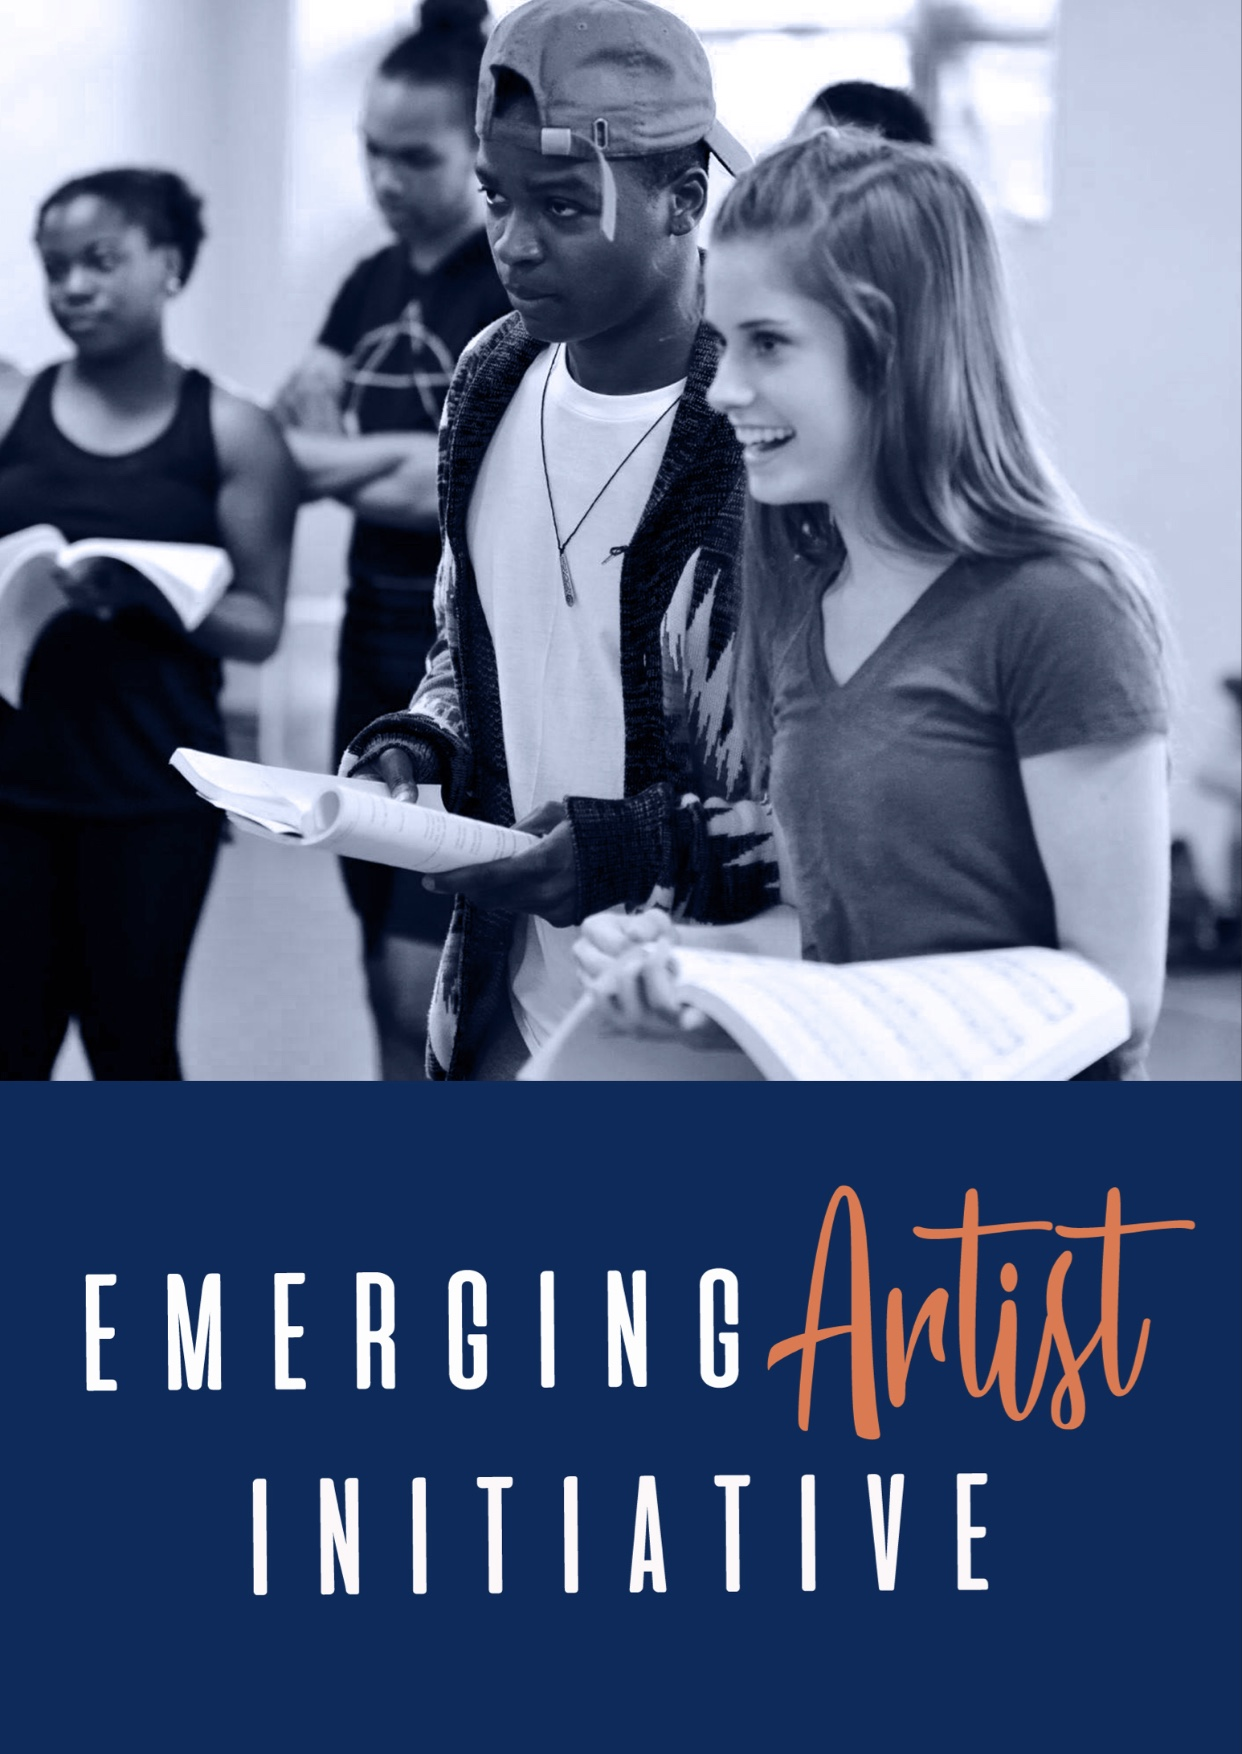 HSRT has a new program, the Emerging Artist Initiative